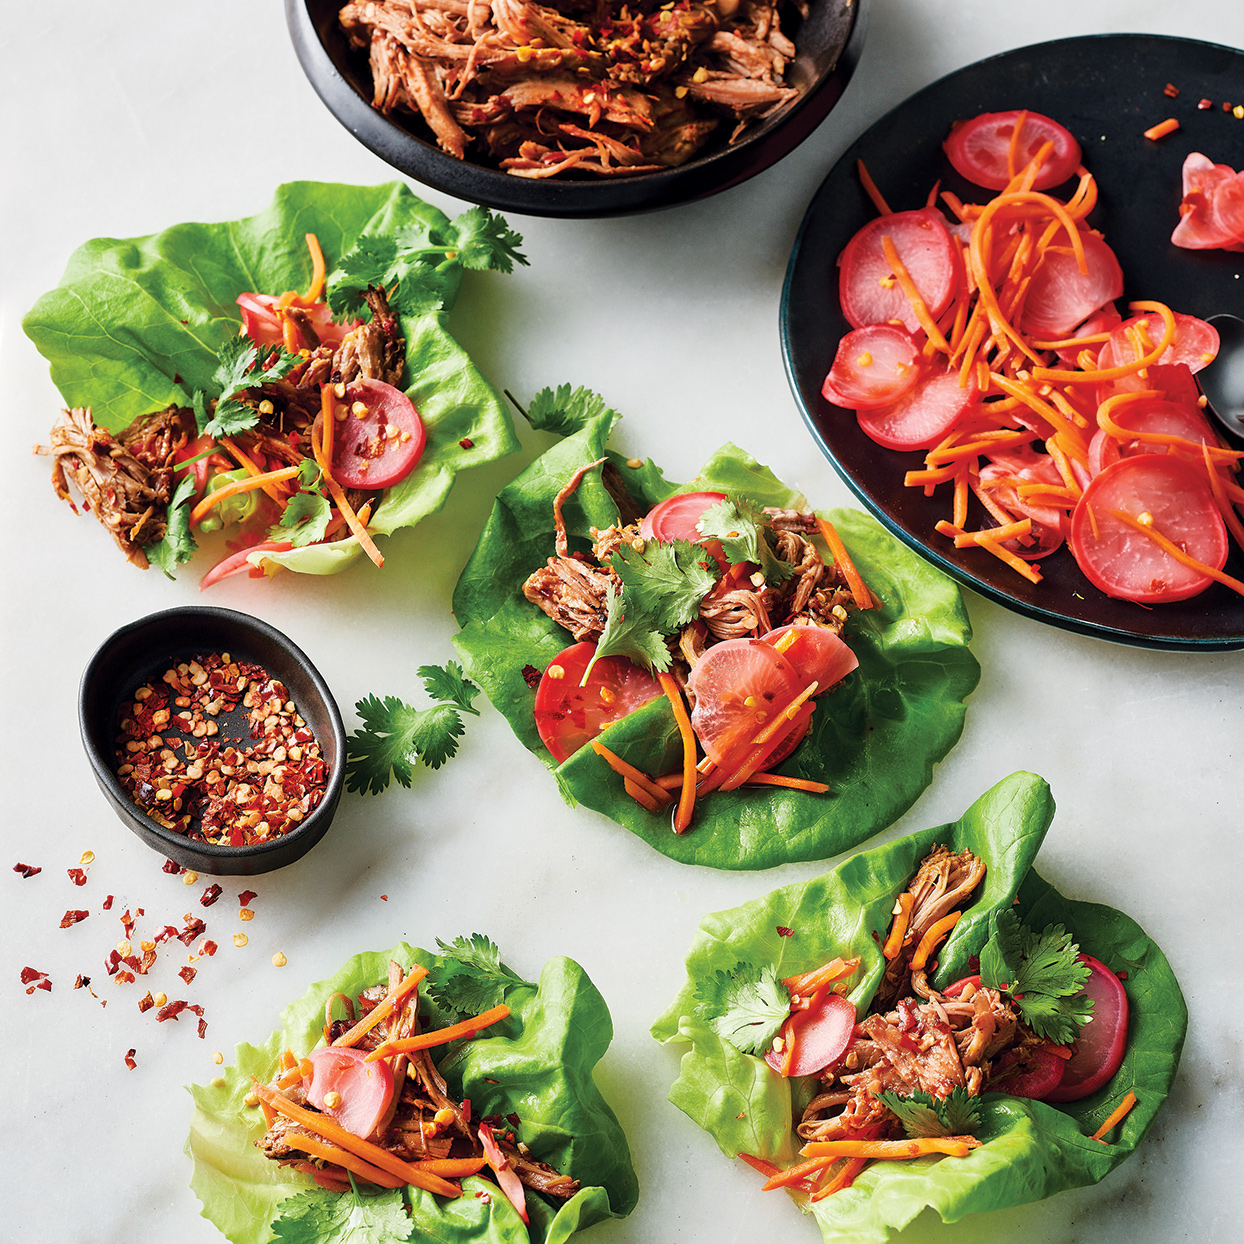 Slow-Cooker Soy-Glazed Pork in Lettuce Cups